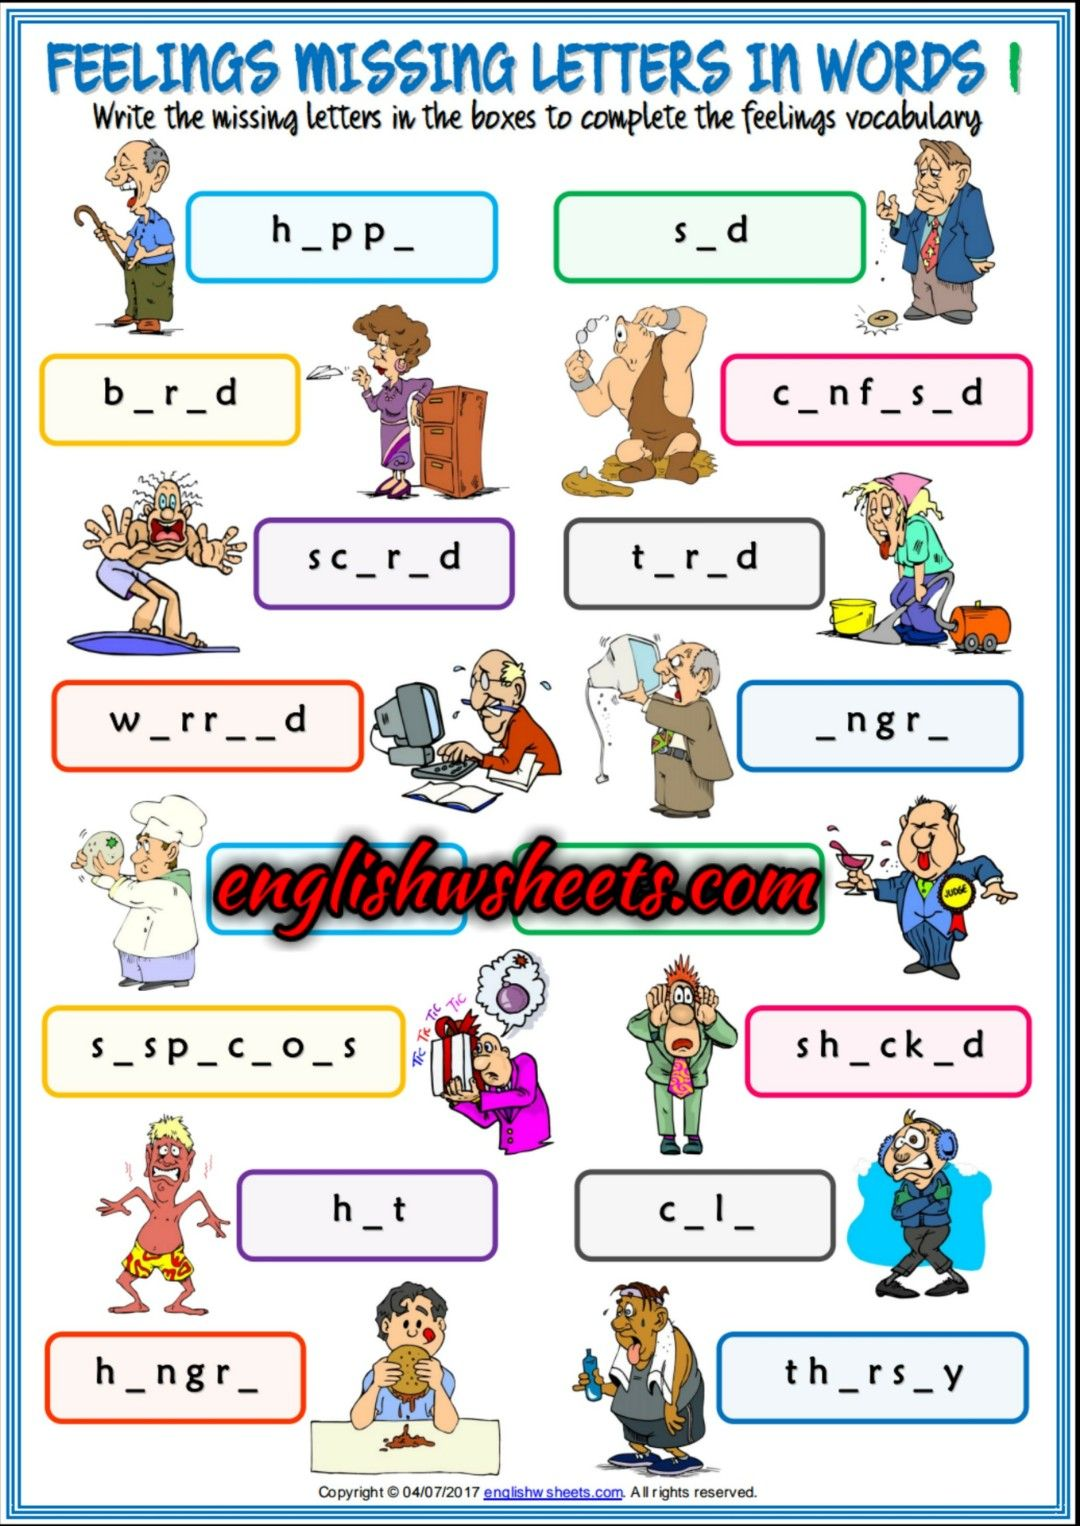 Feelings Emotions Esl Printable Missing Letters In Words